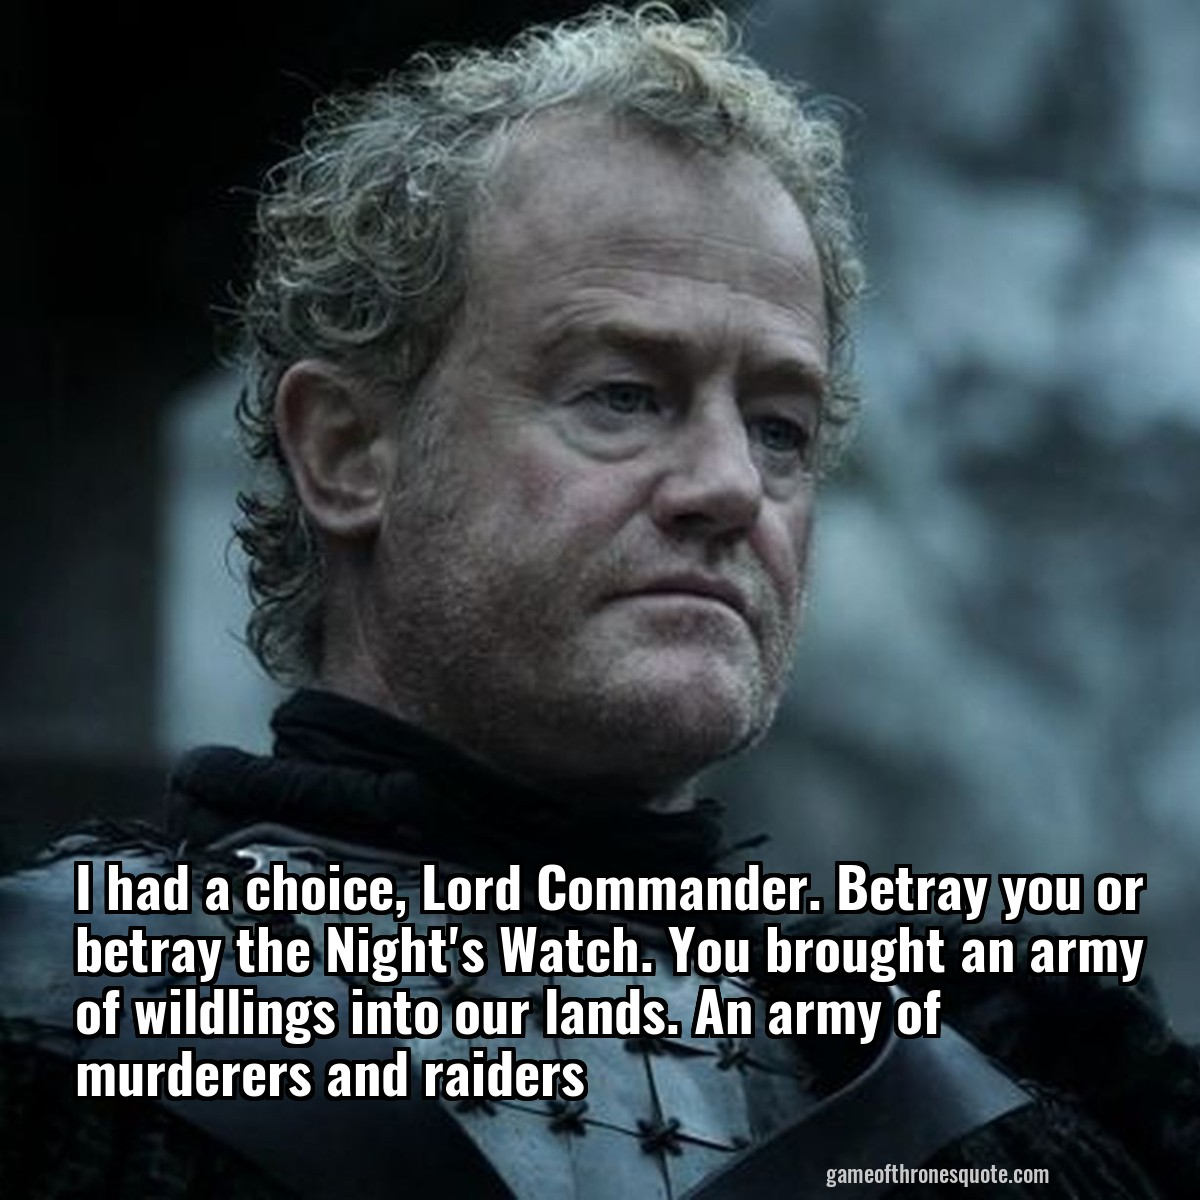 I had a choice, Lord Commander. Betray you or betray the Night's Watch. You brought an army of wildlings into our lands. An army of murderers and raiders